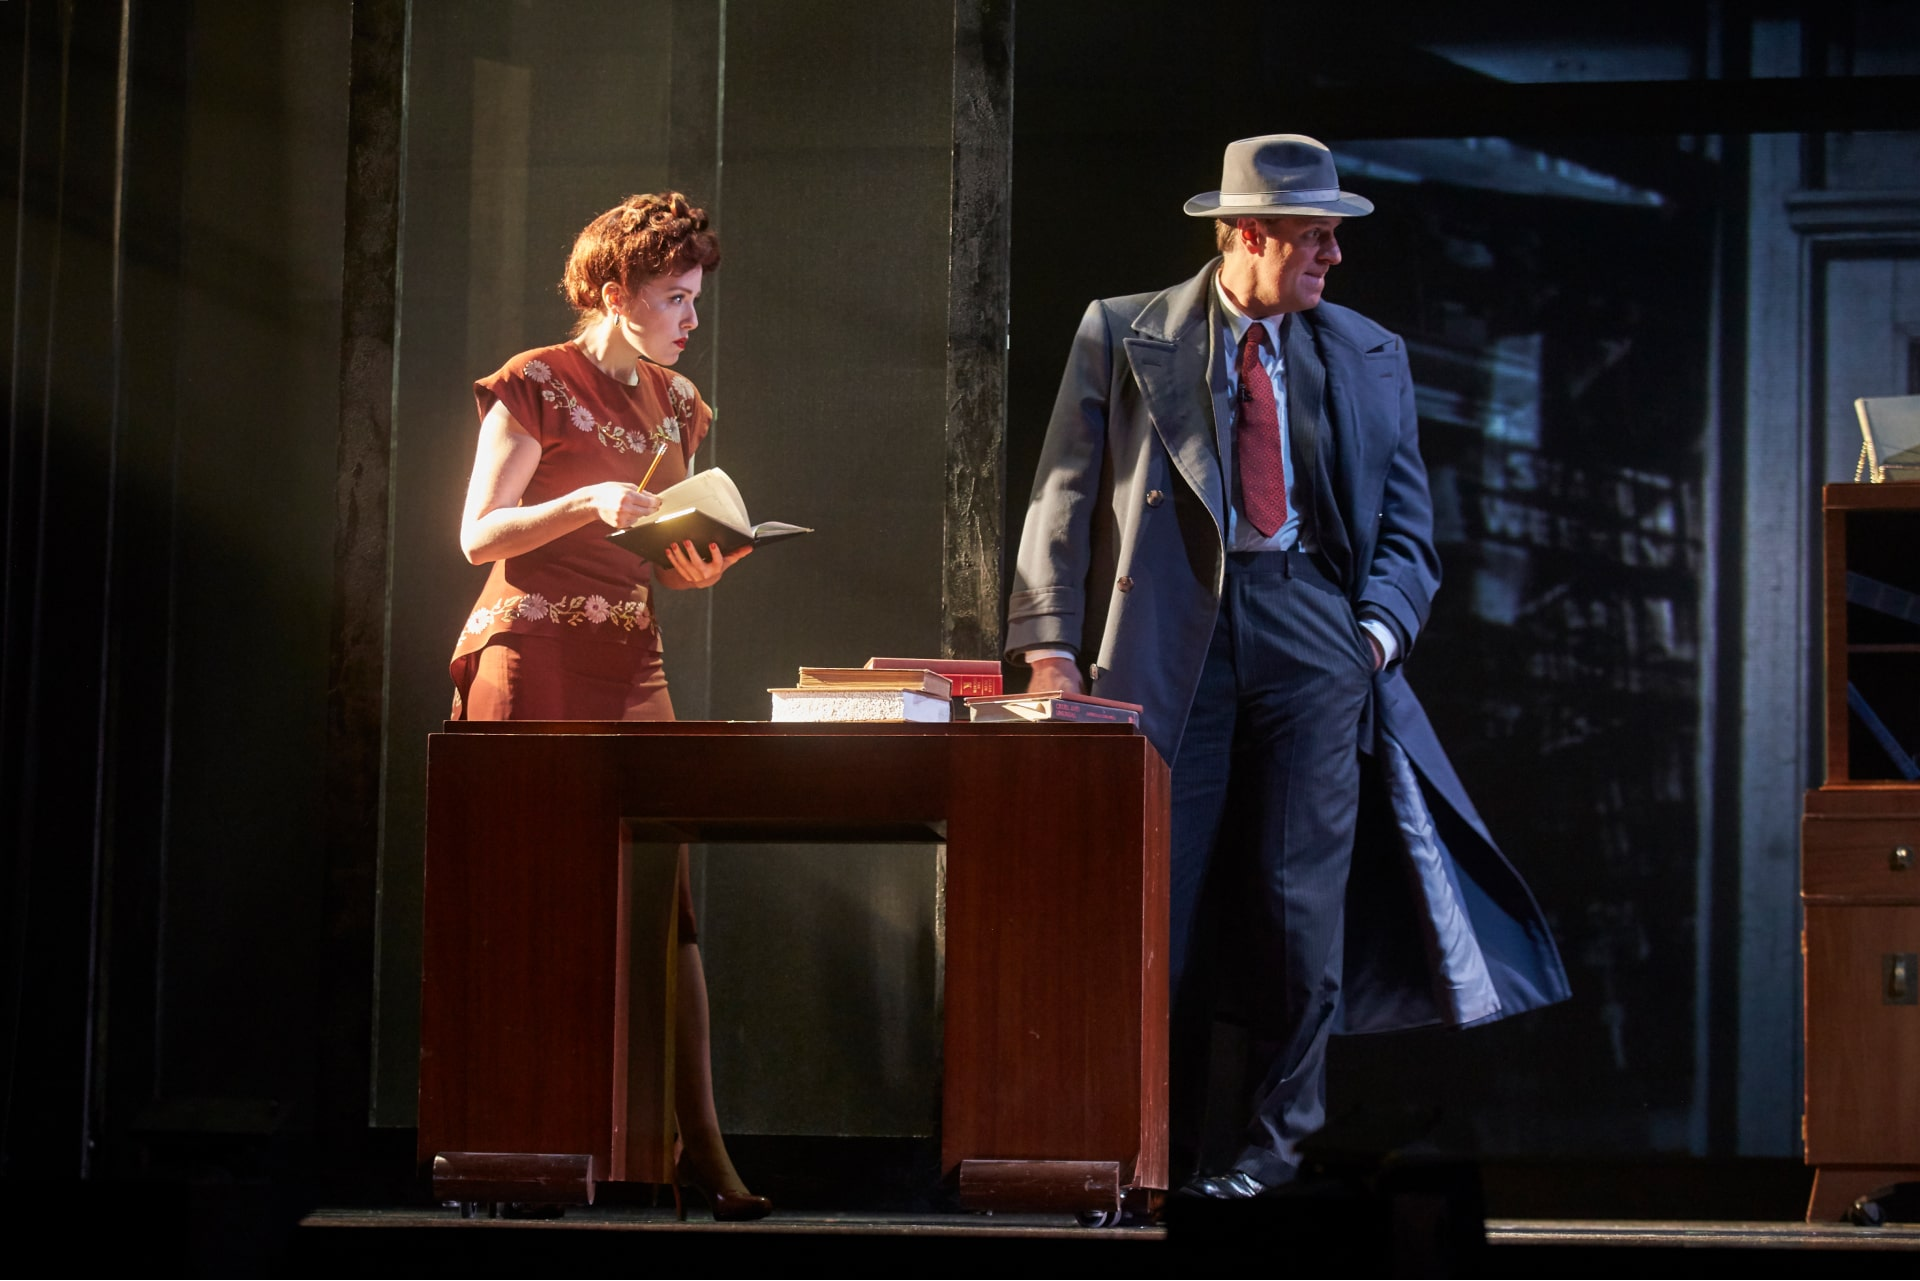 Man in suit and fedora perches on desk talking to woman in brown skirt-suit seated on chair – backlit by strong shaft of light.